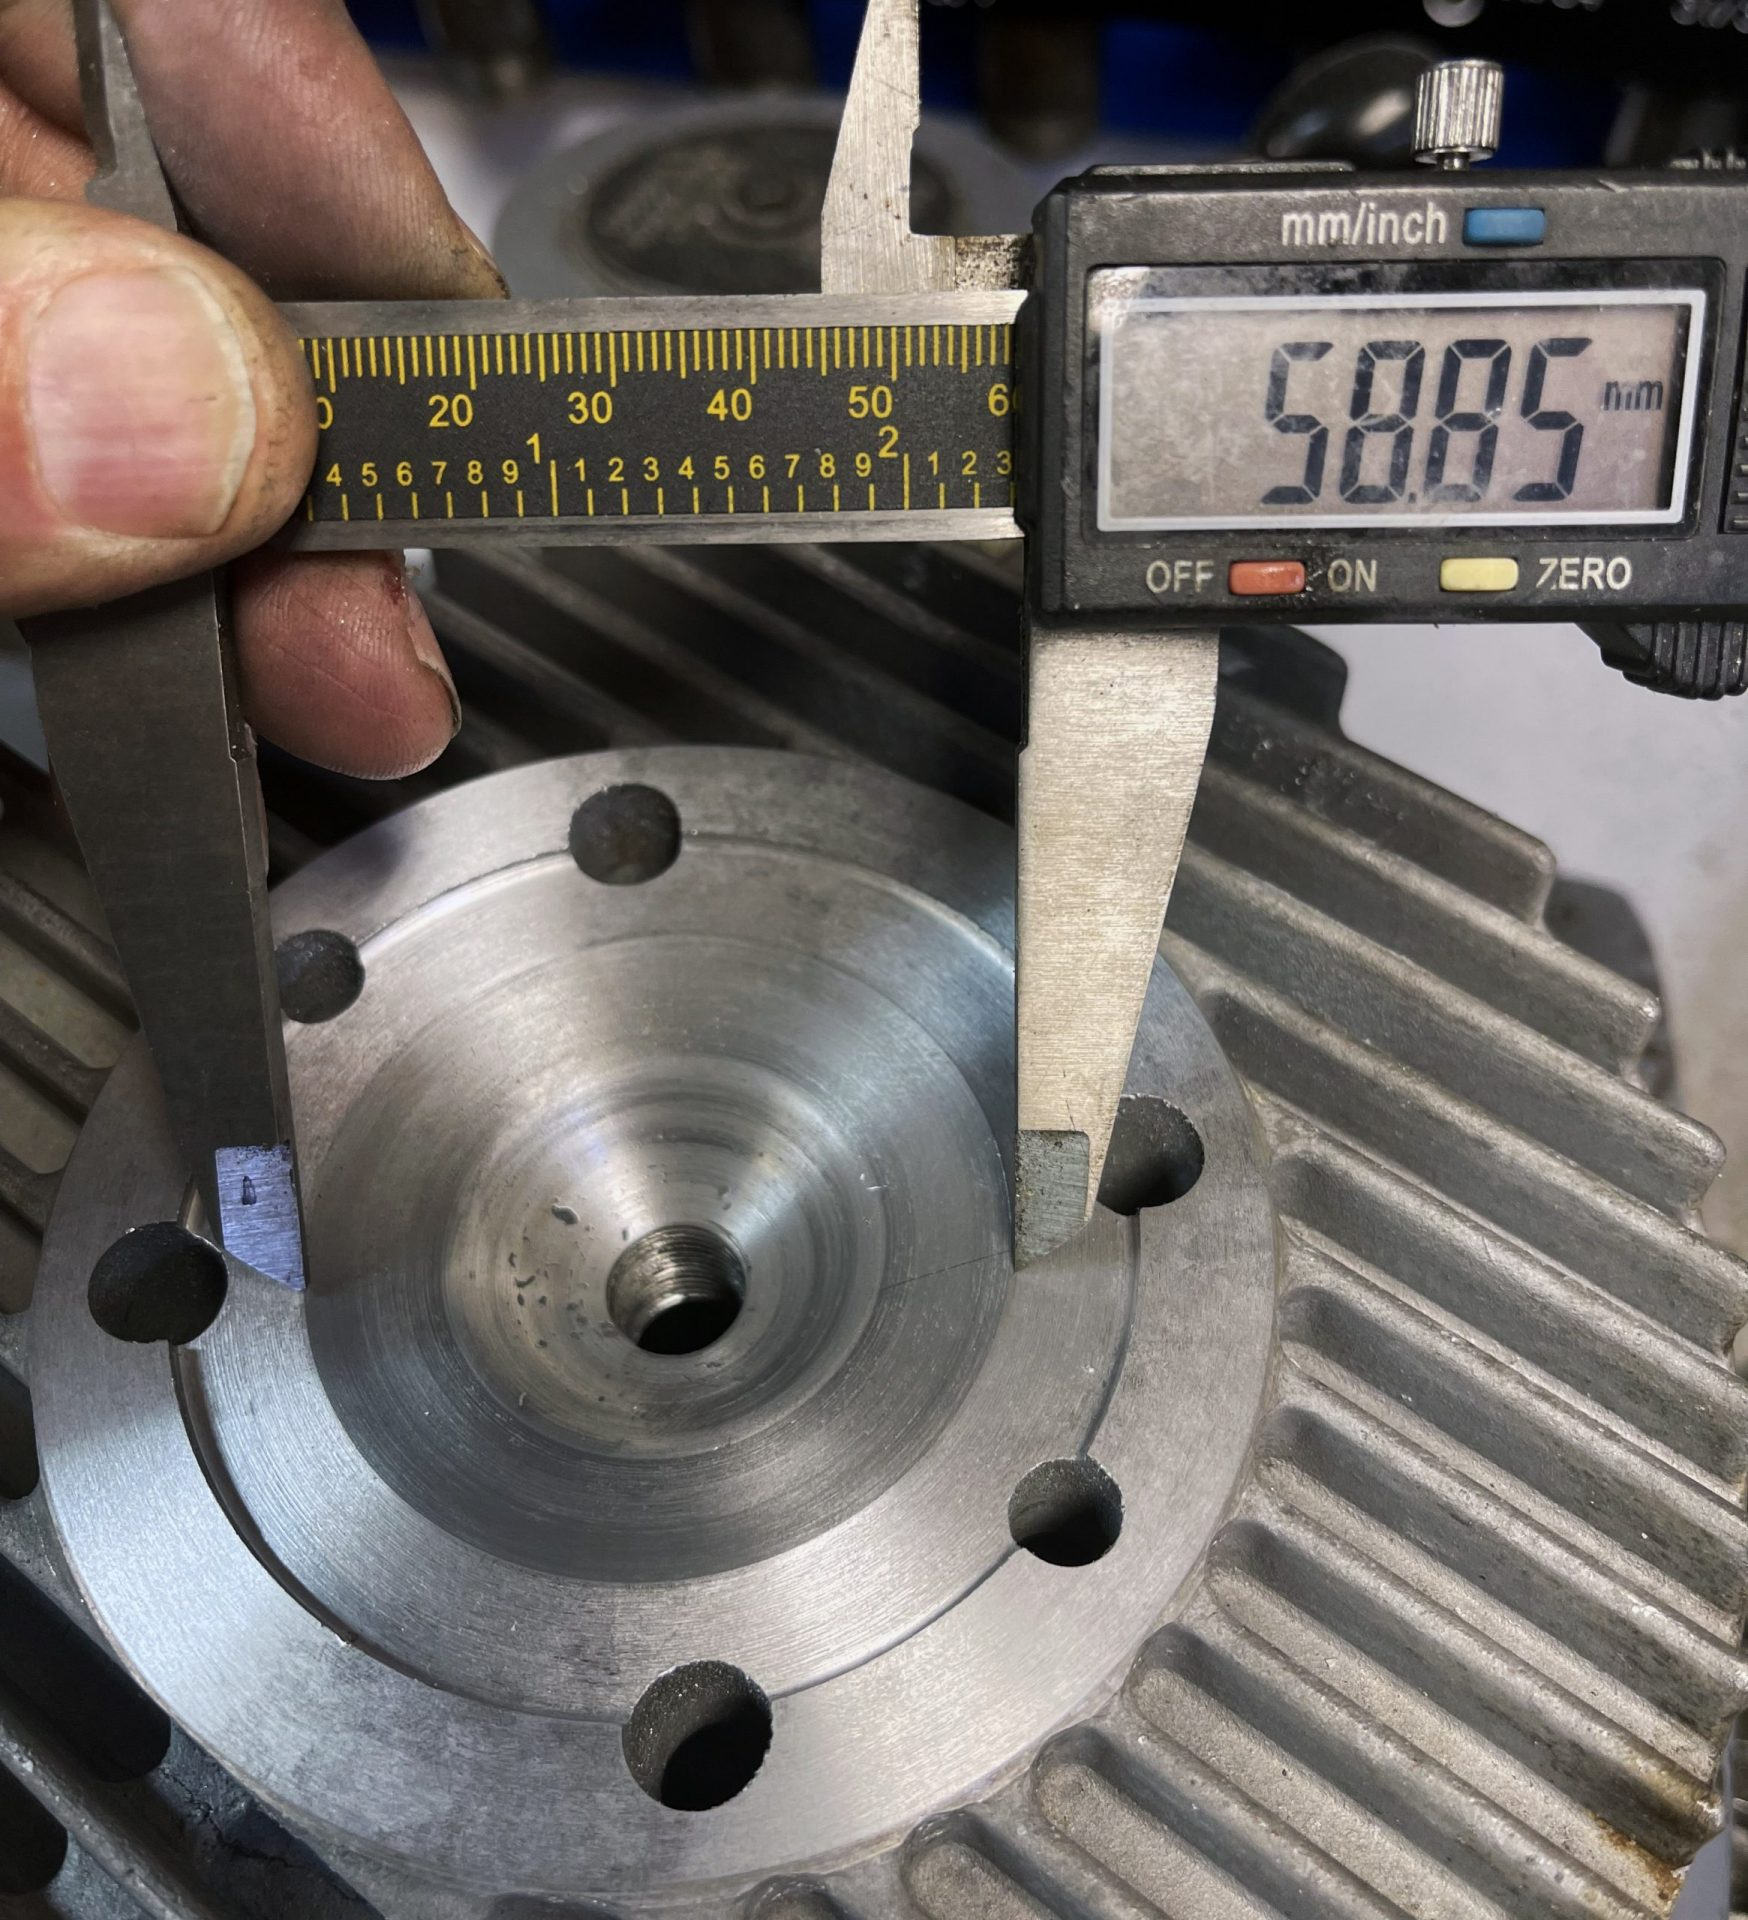 The final check is to make sure the squish band is the correct diameter for your engine's bore. We are using a 58.8mm piston, so the 58.85mm size is just about right. If your diameter is too small, cut the squish band deeper. If it is too big, cut the cylinder sealing surface some more. After you do a couple of these you'll get the hang of juggling the dimensions for the desired results.